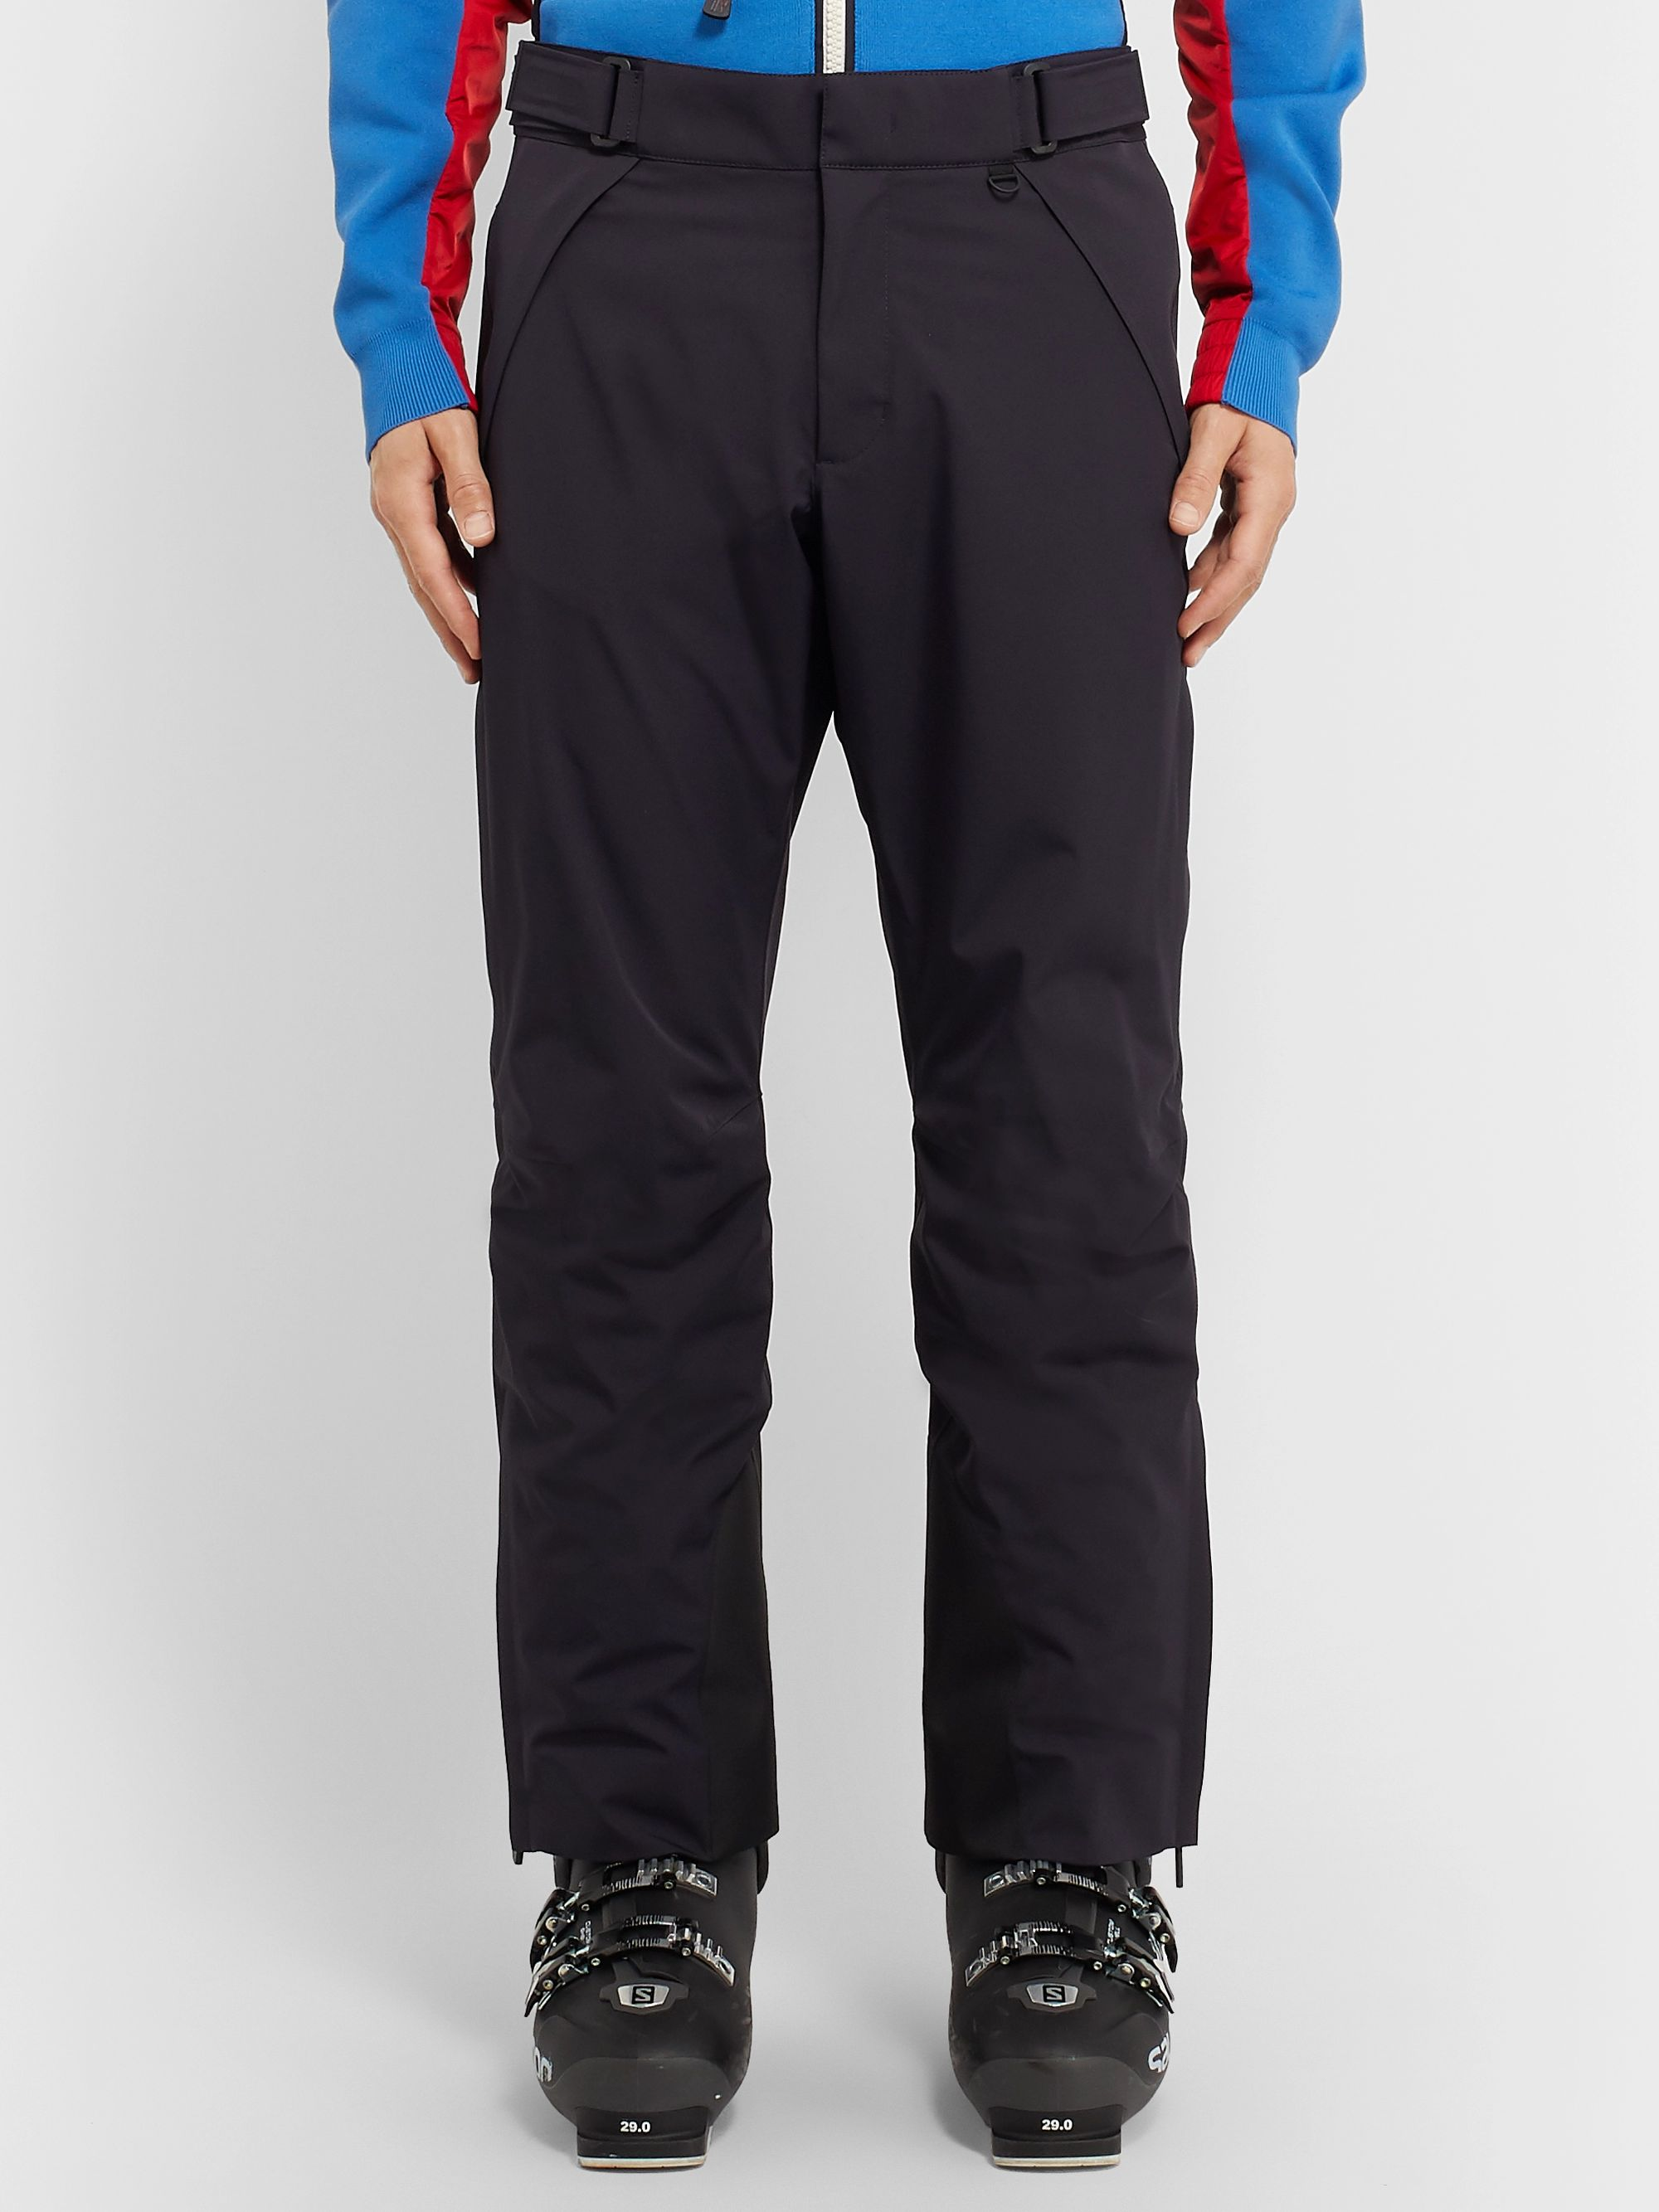 Moncler Grenoble Nylon-Blend Ski Trousers